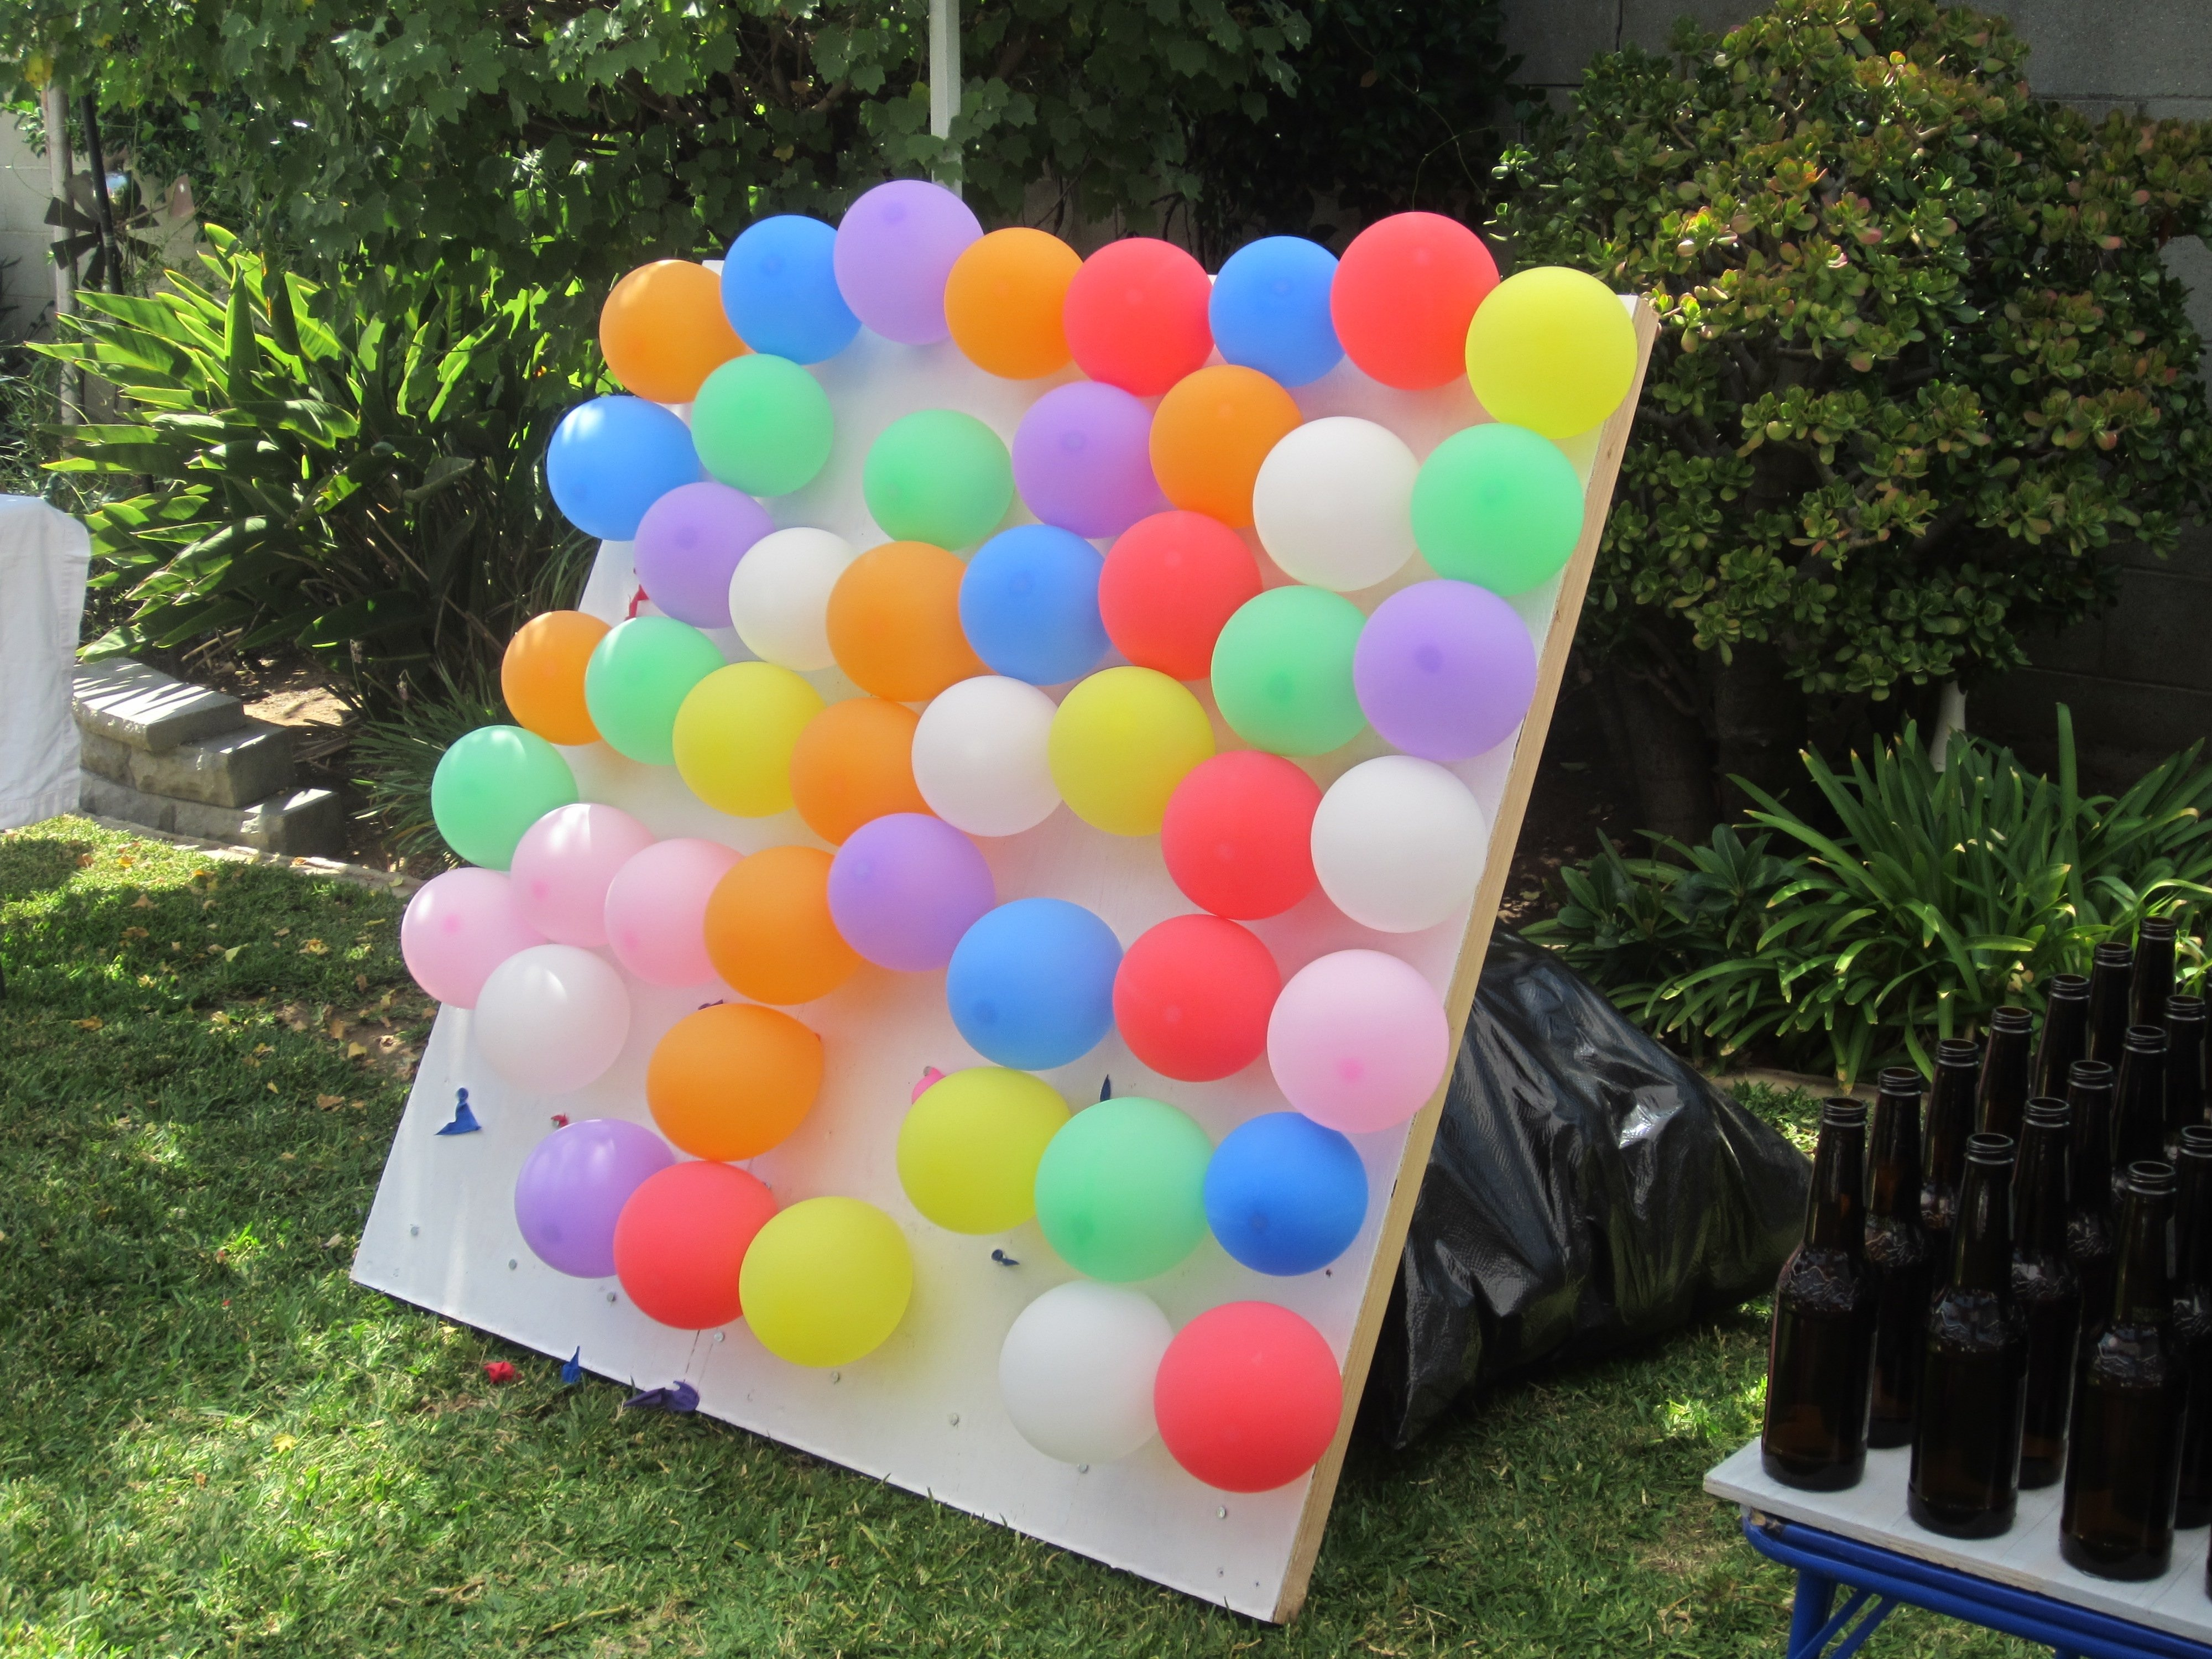 10 Perfect Party Game Ideas For Kids kids party games ideas wedding 2021